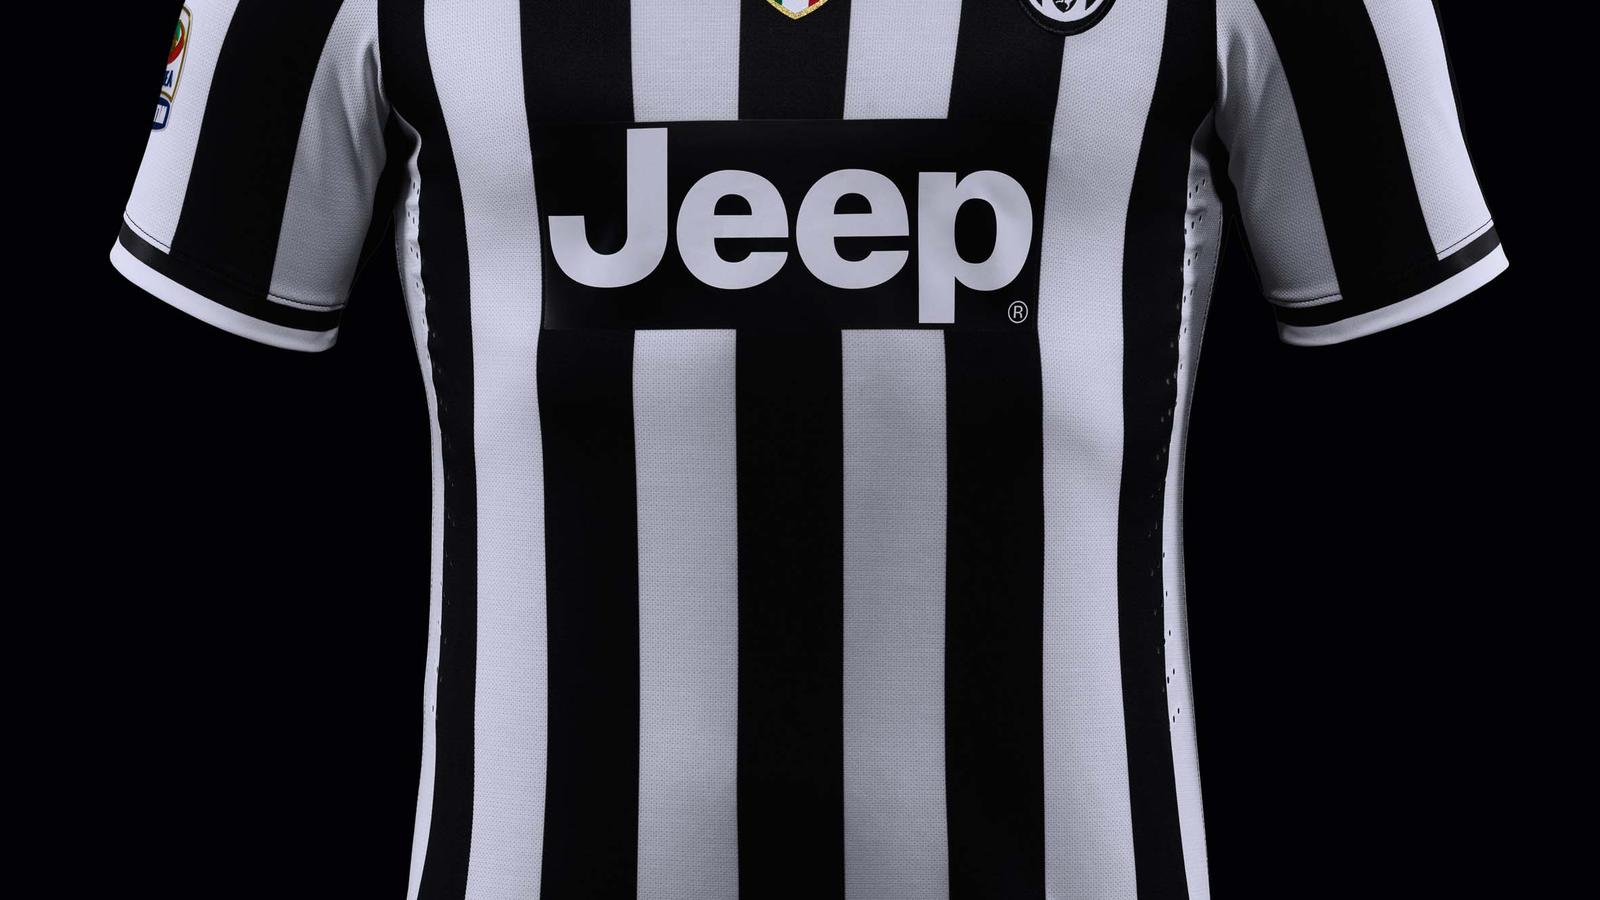 newest 782f3 f5798 New Juventus home kit by Nike features tailored fit, 1980s ...